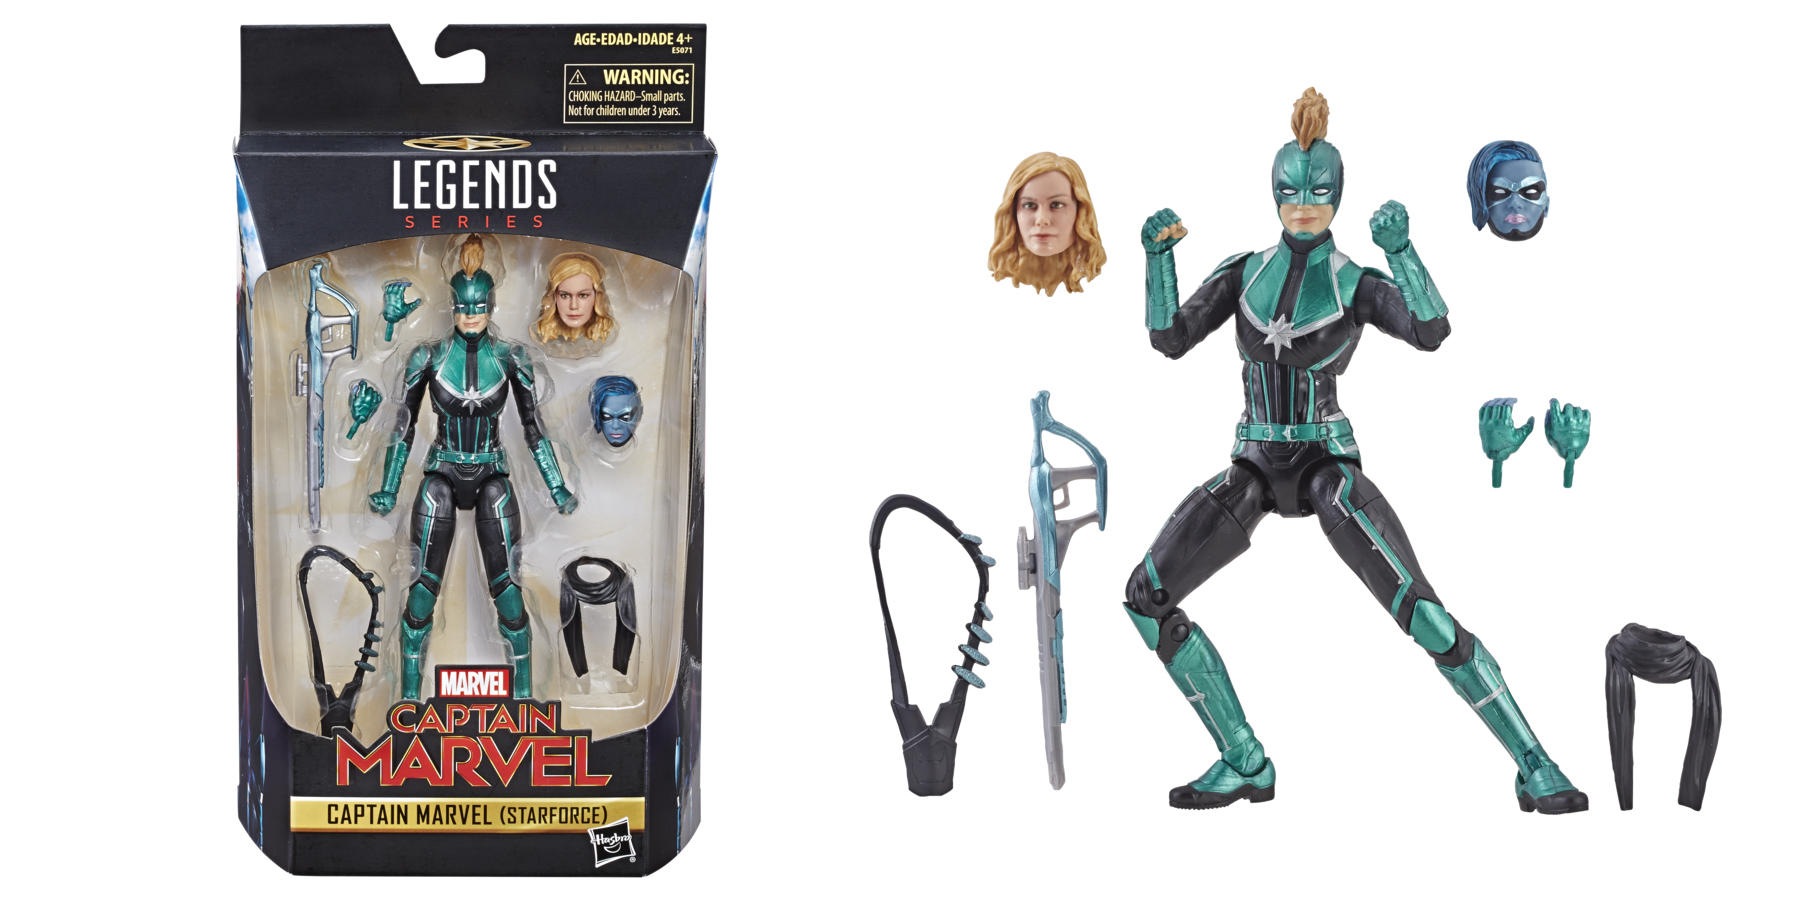 Marvel Captain Marvel 6-Inch Legends Captain Marvel (Starforce) Figure